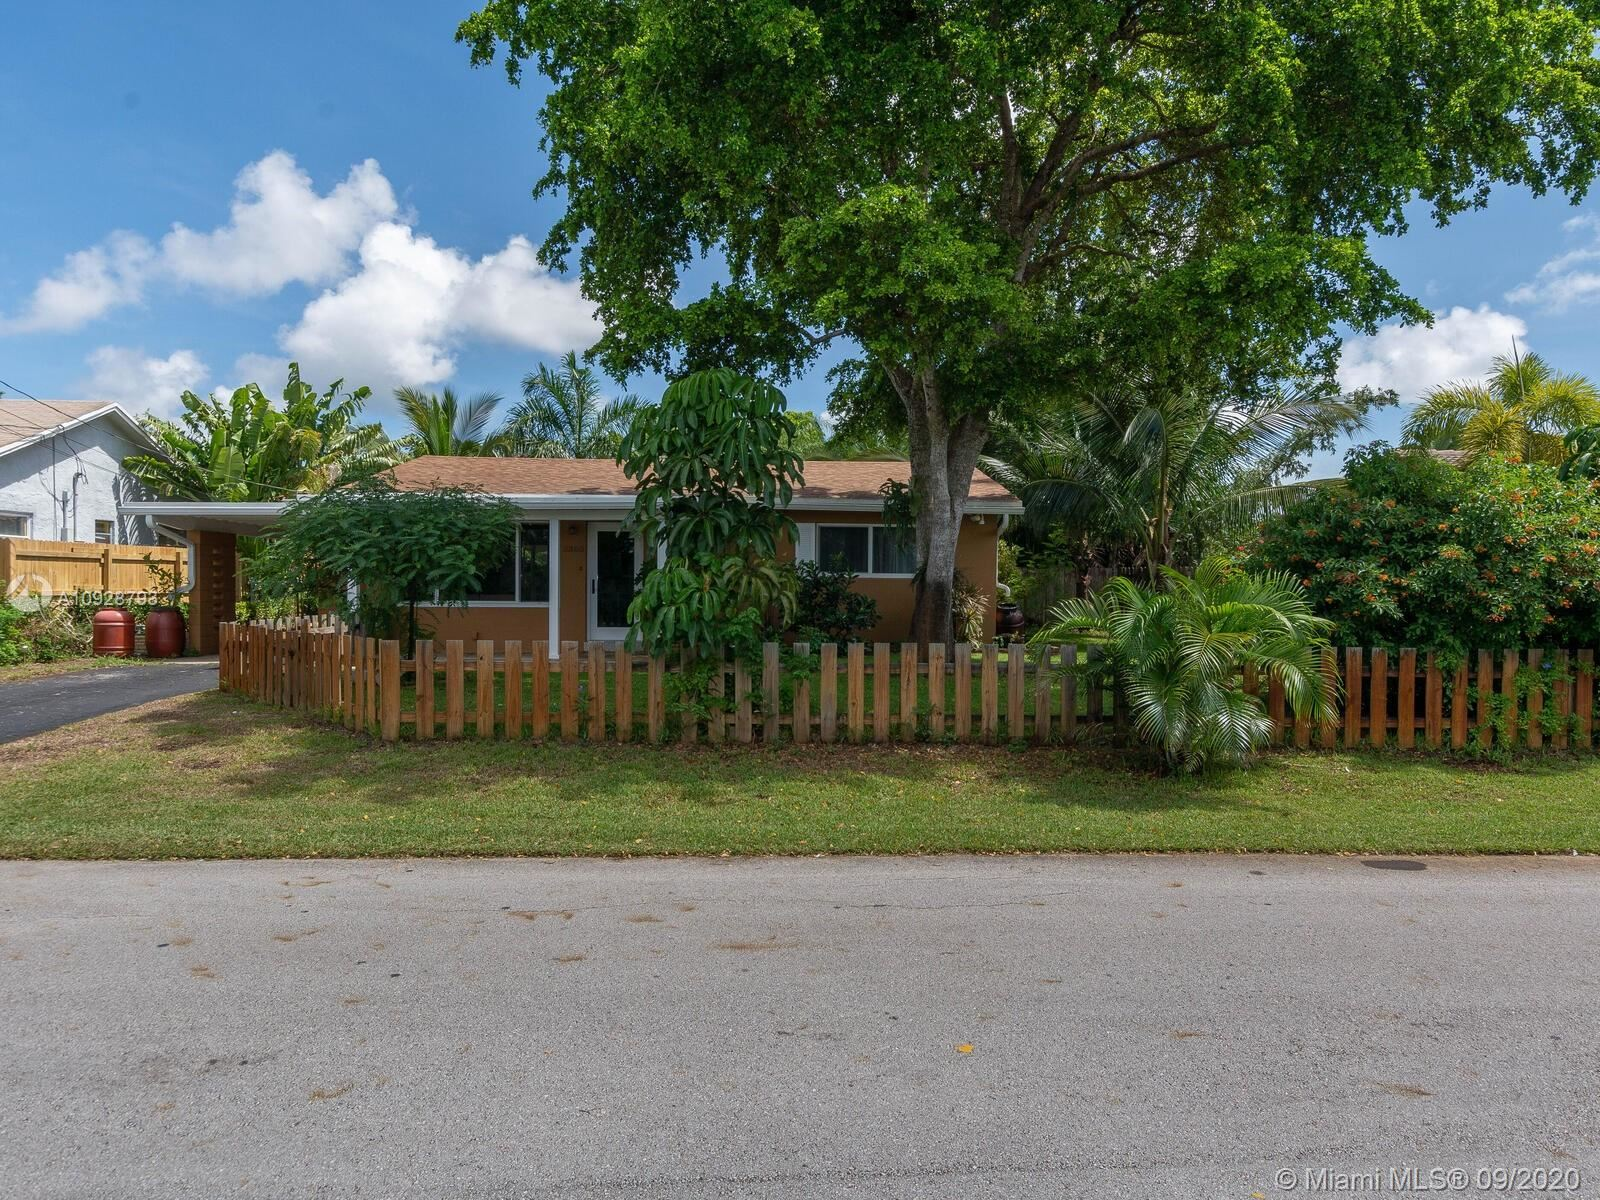 Photo of 3360 NE 13th Ave, Oakland Park, FL 33334 (MLS # A10928793)